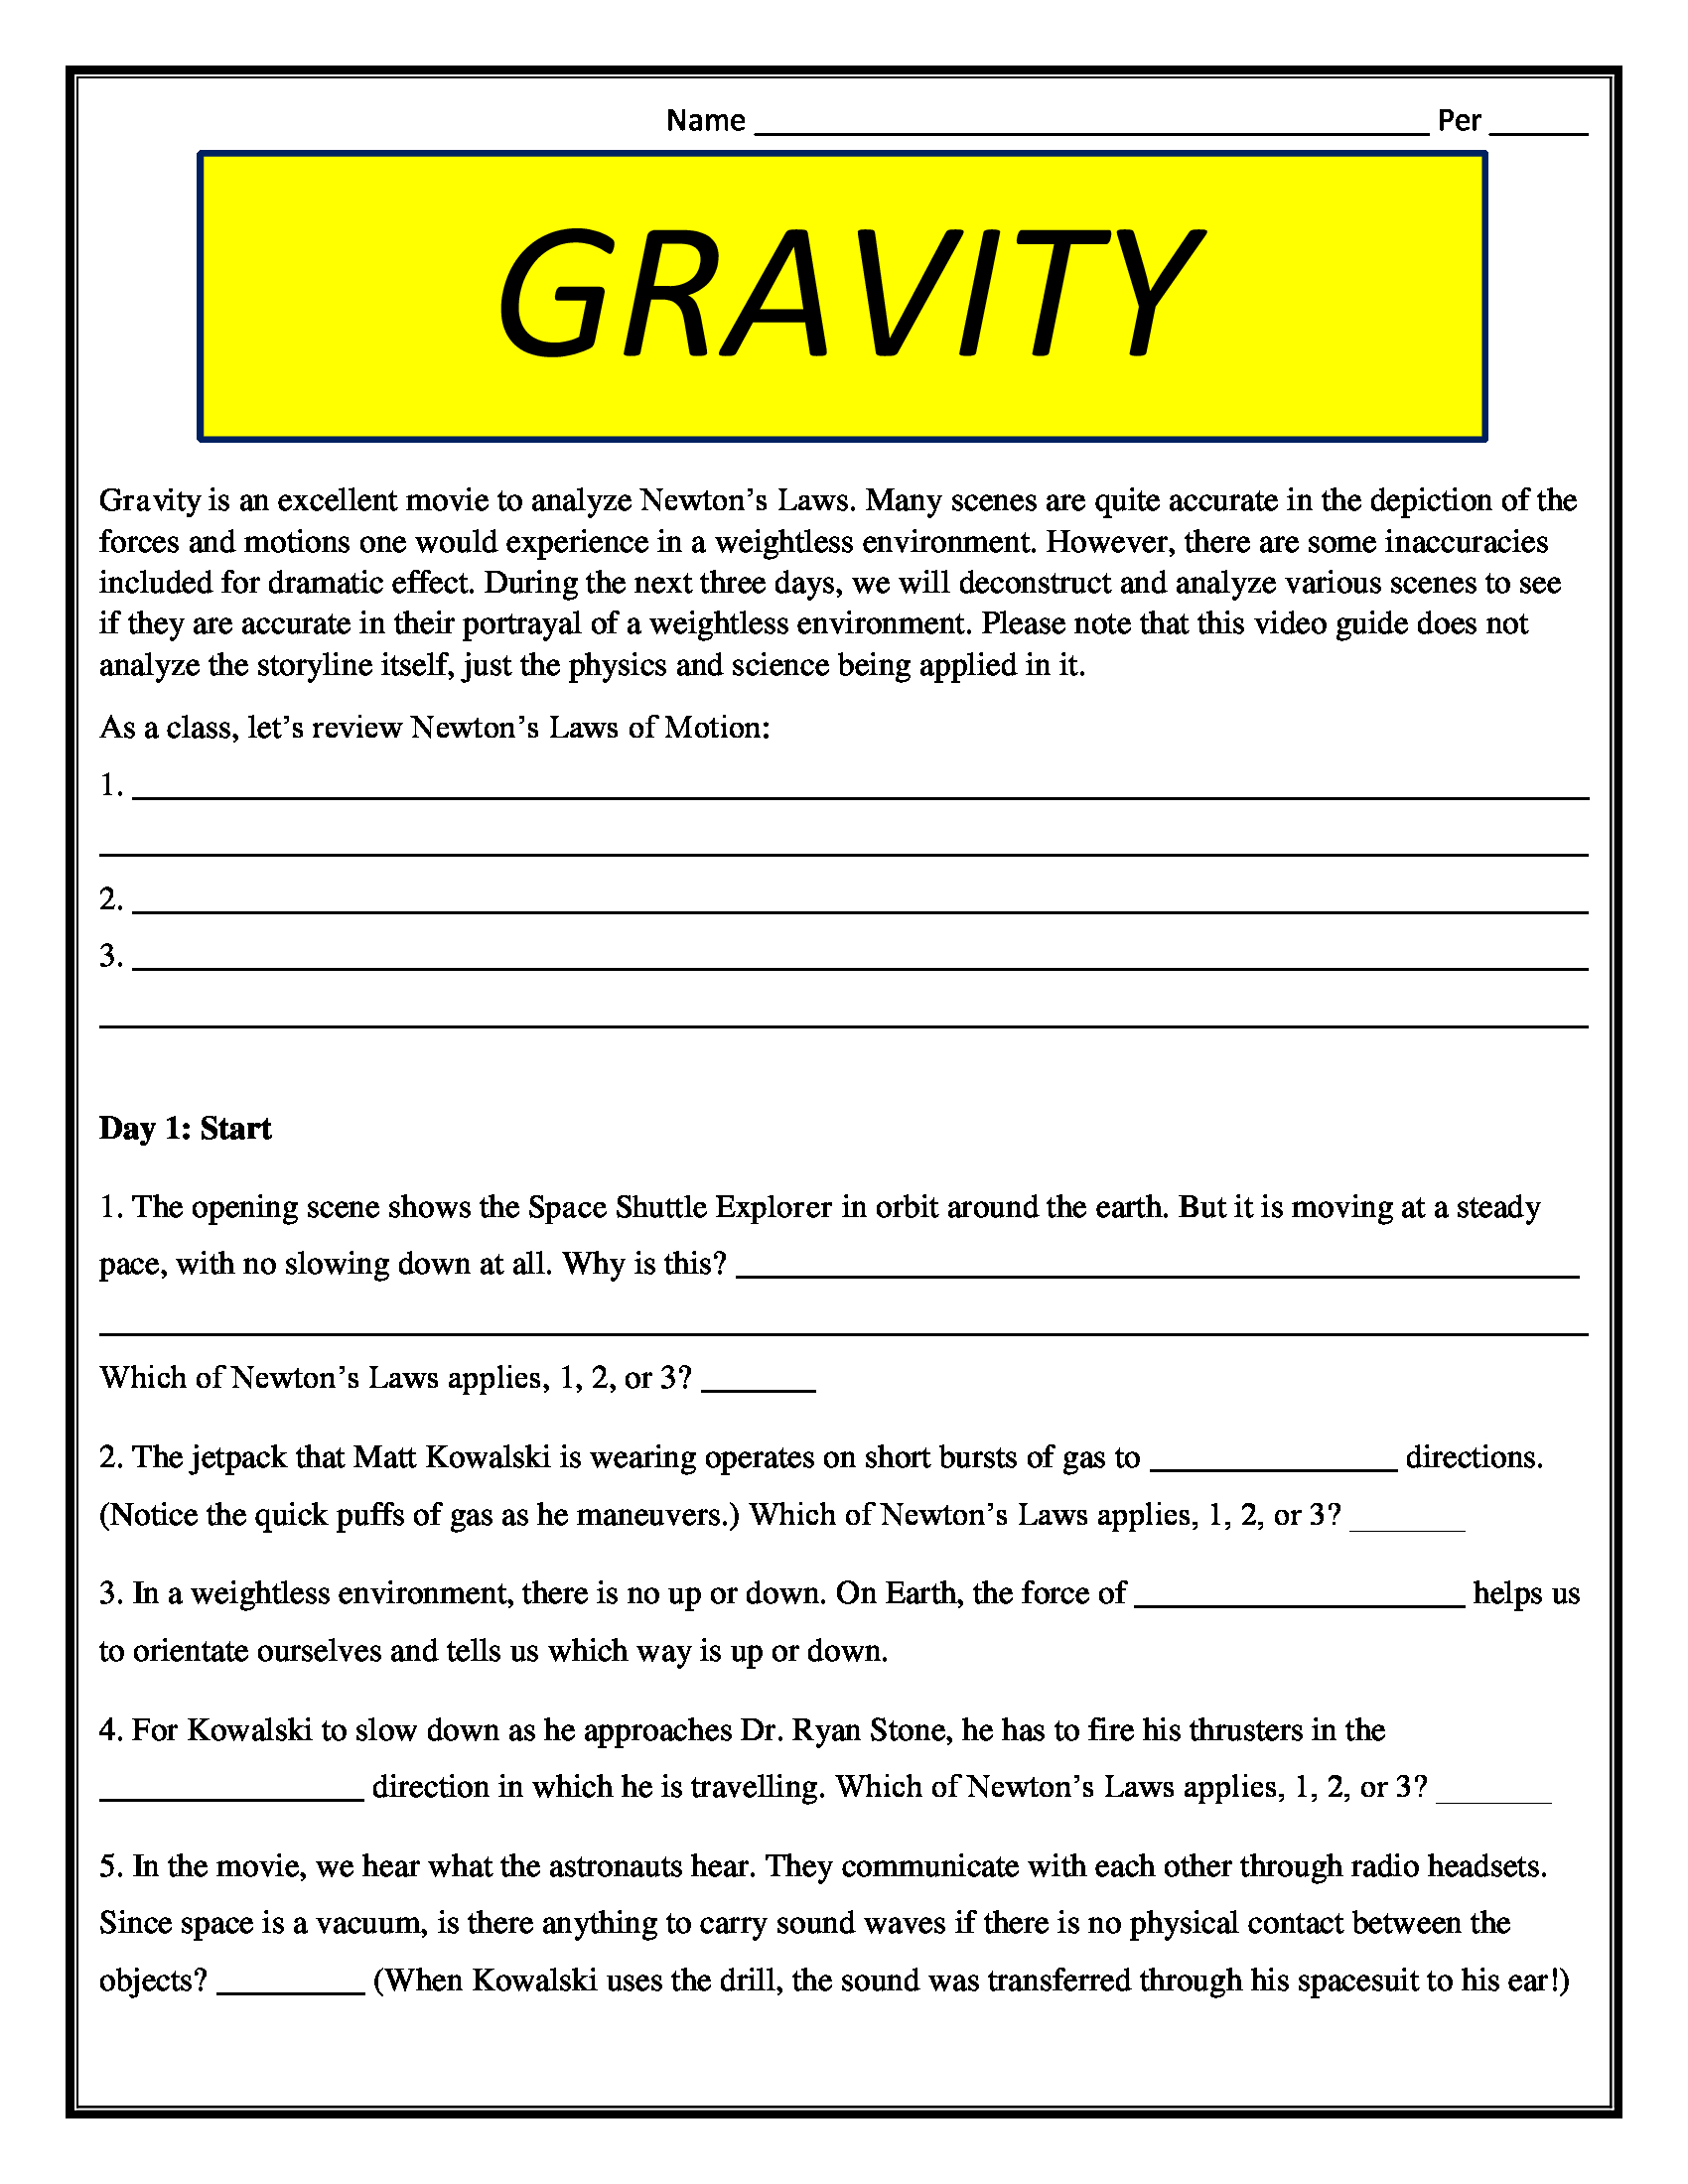 Gravity Movie Worksheet Pg 13